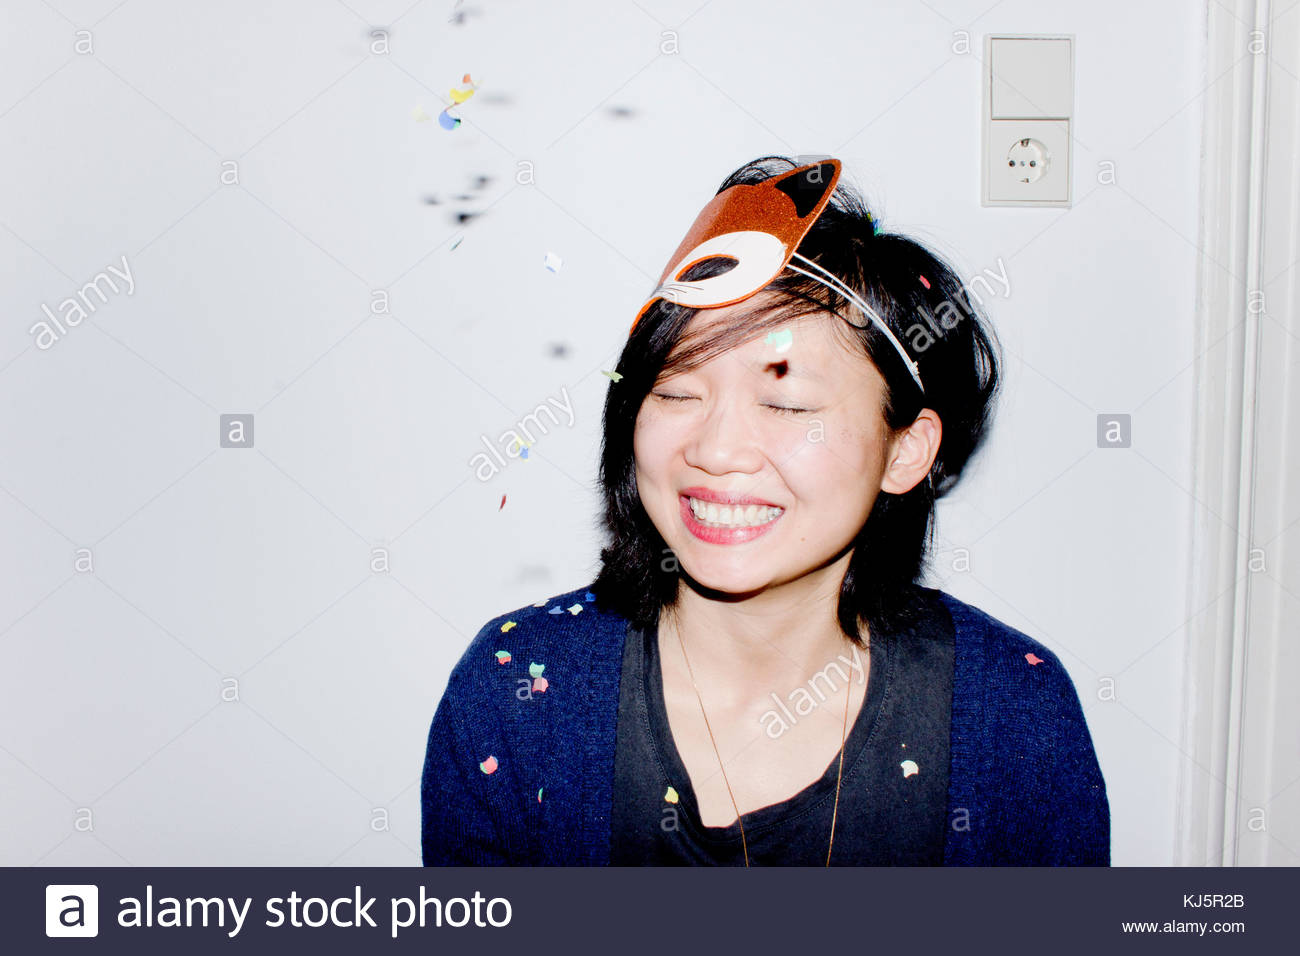 Smiling woman with fox mask and confetti - Stock Image